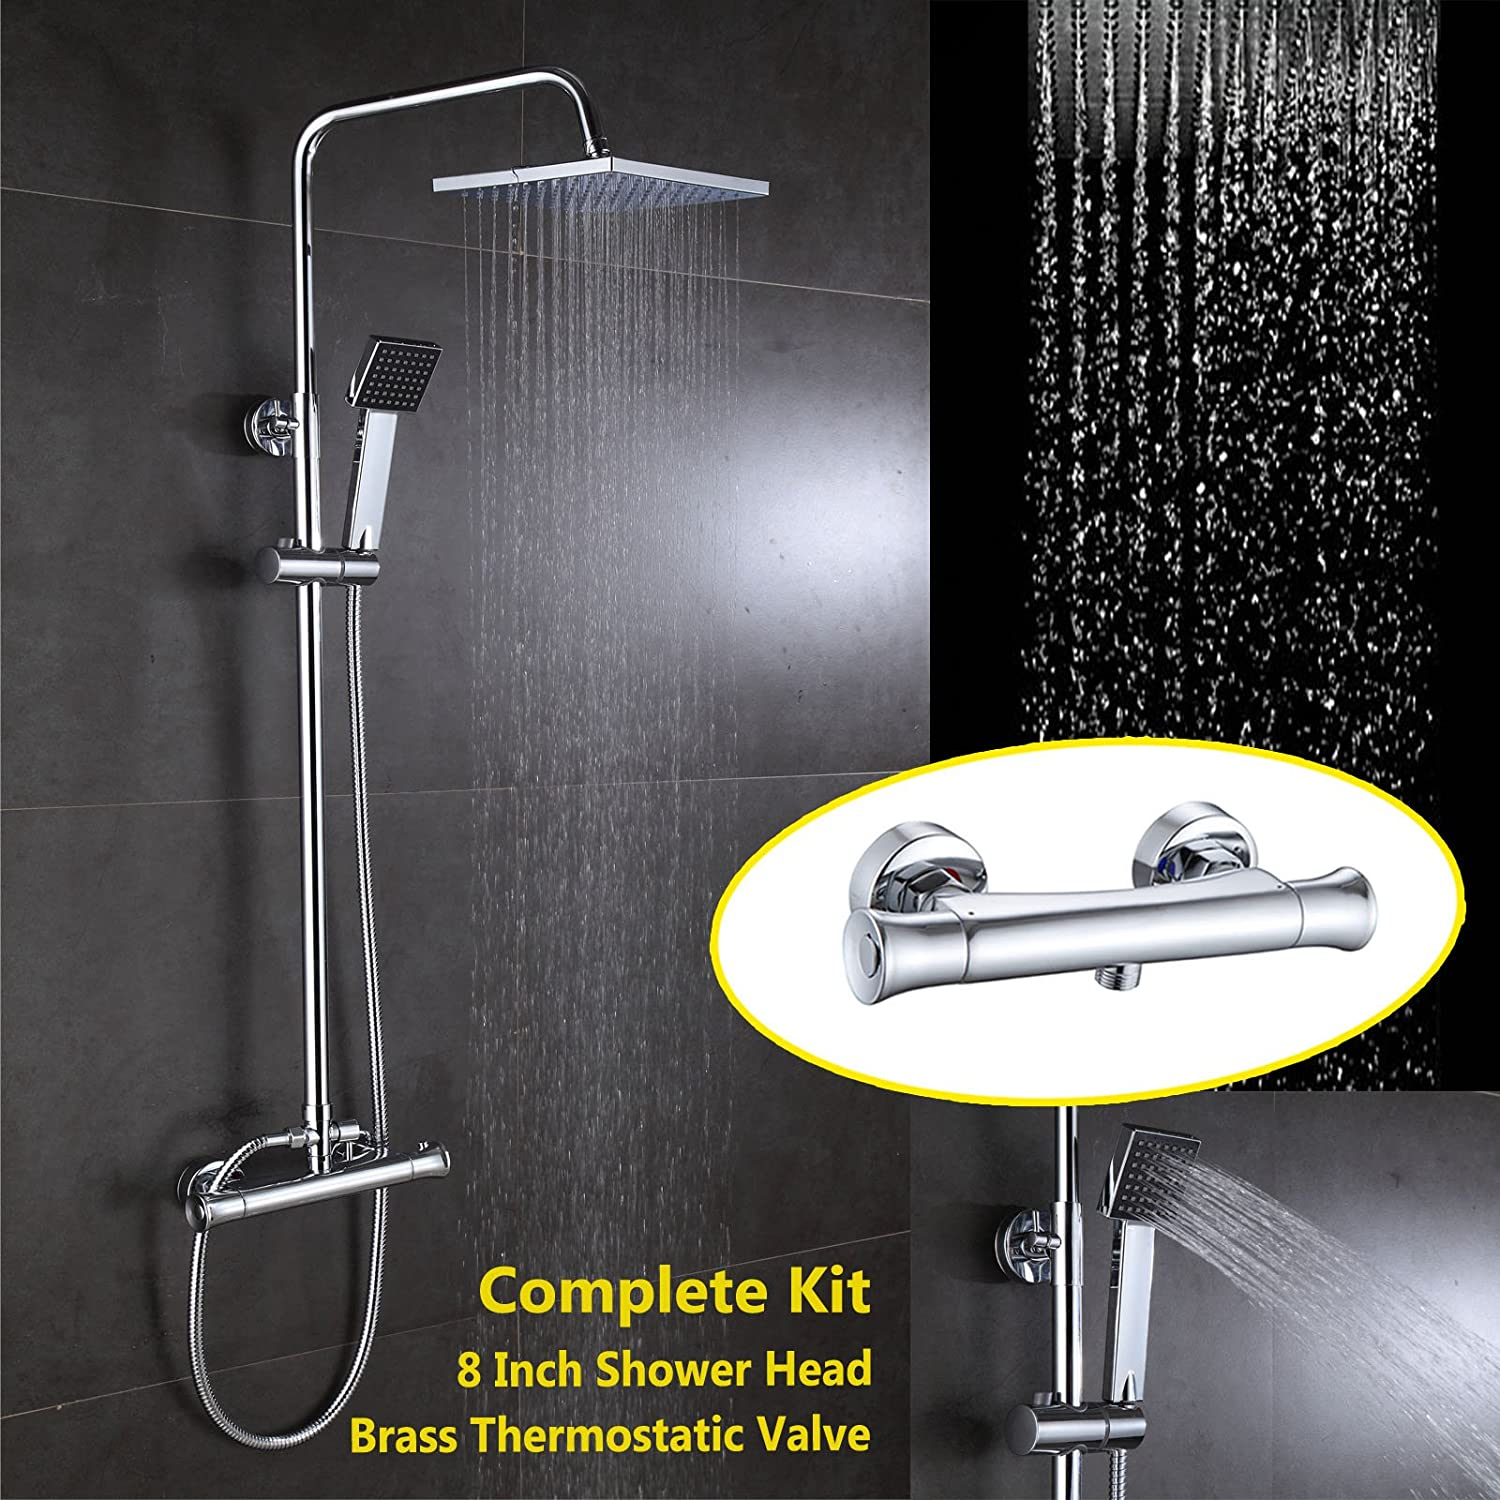 BAR CHROME THERMOSTATIC CONTROL SHOWER VALVE MIXER TAP SET /& RAIL HOSE HEAD KIT